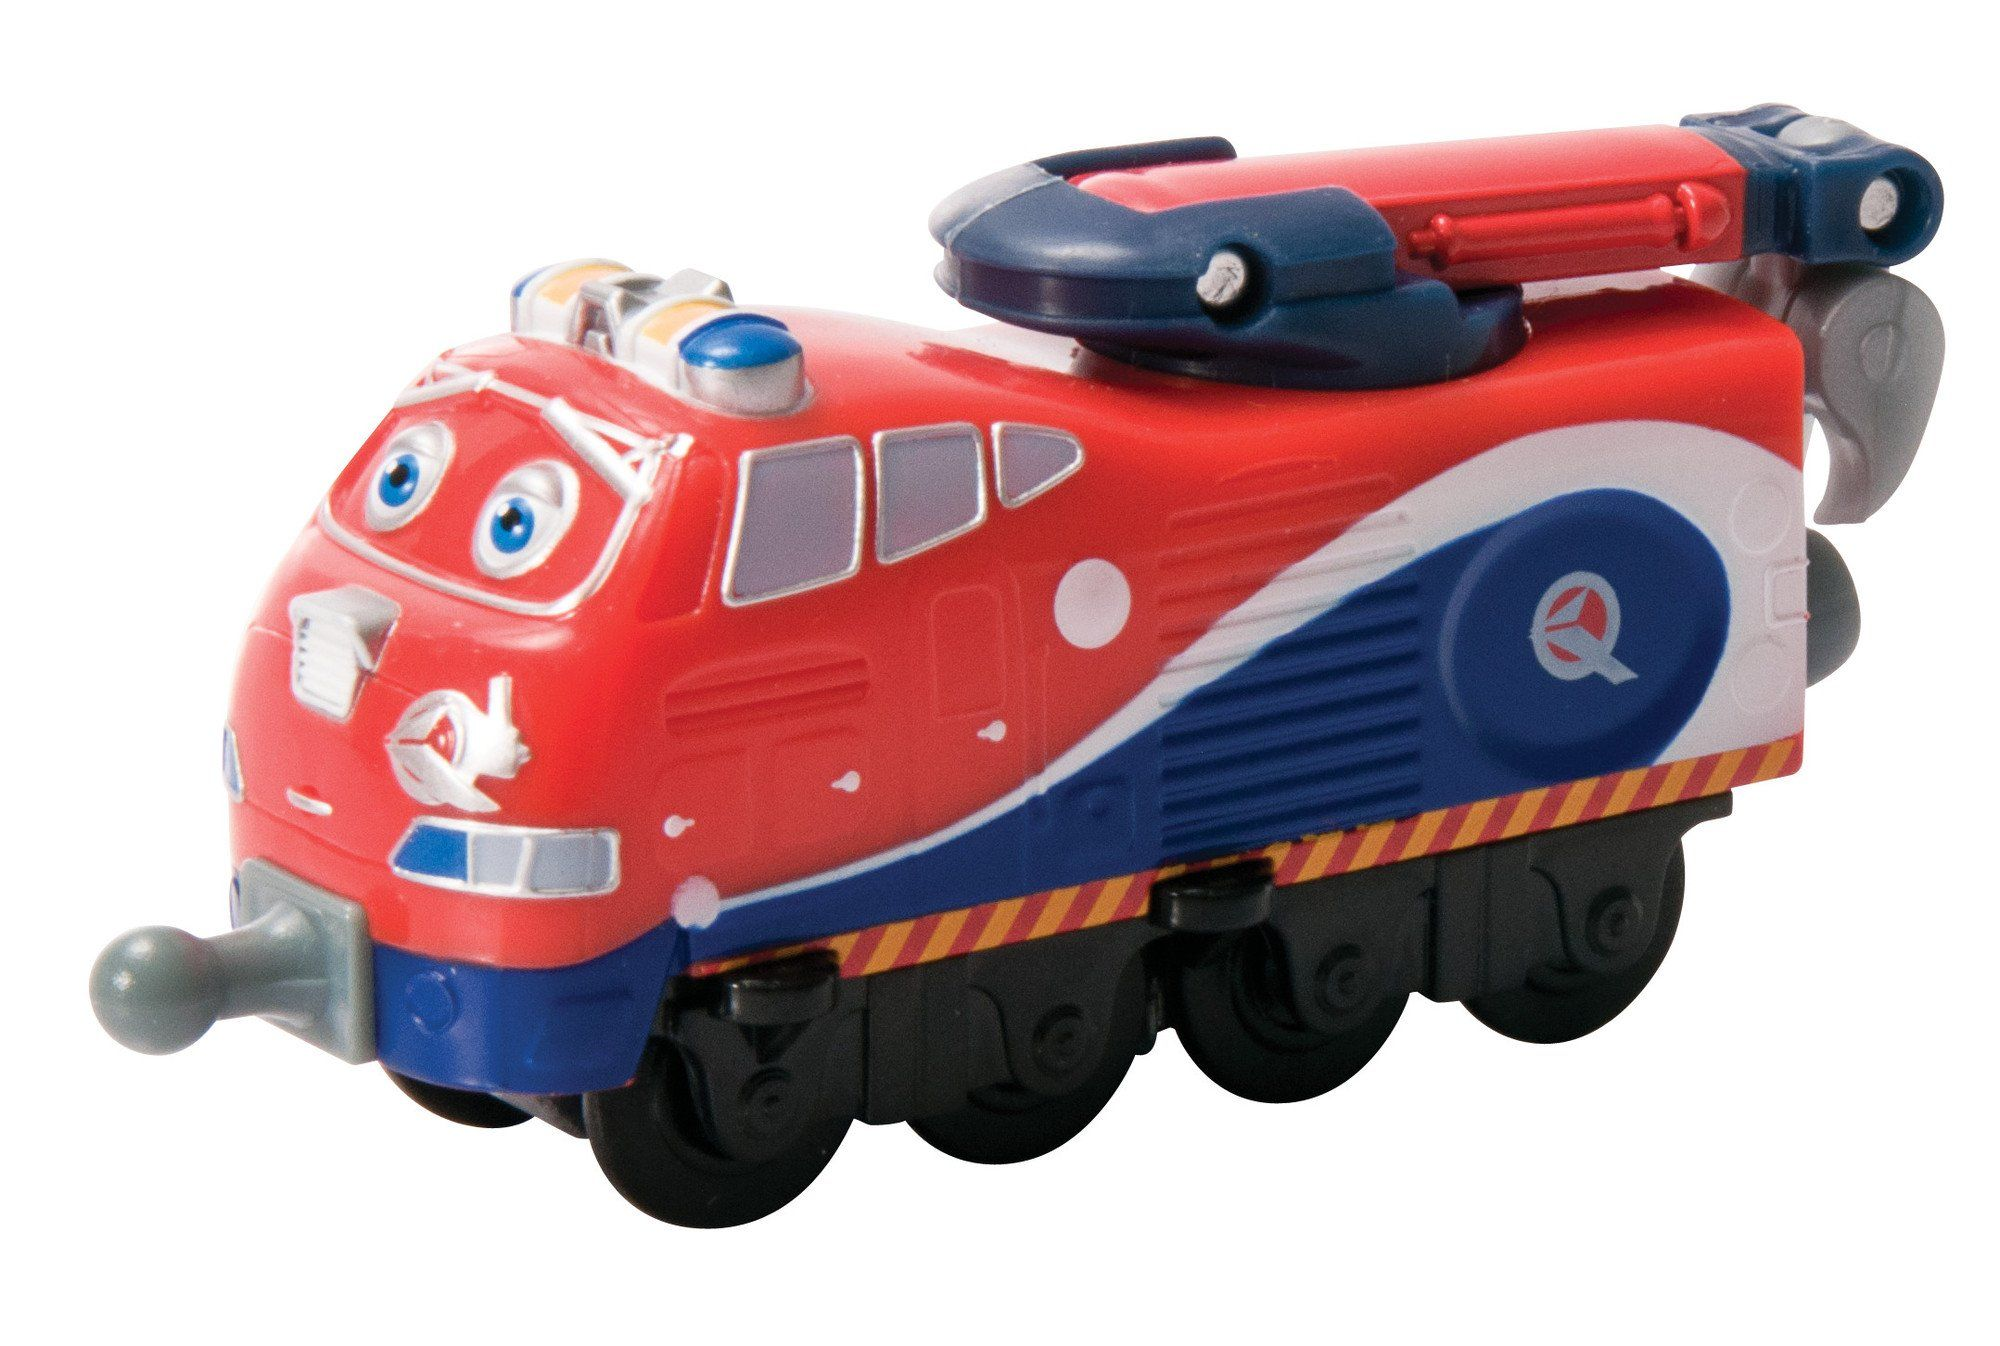 Beau Dessin A Imprimer Train Chuggington